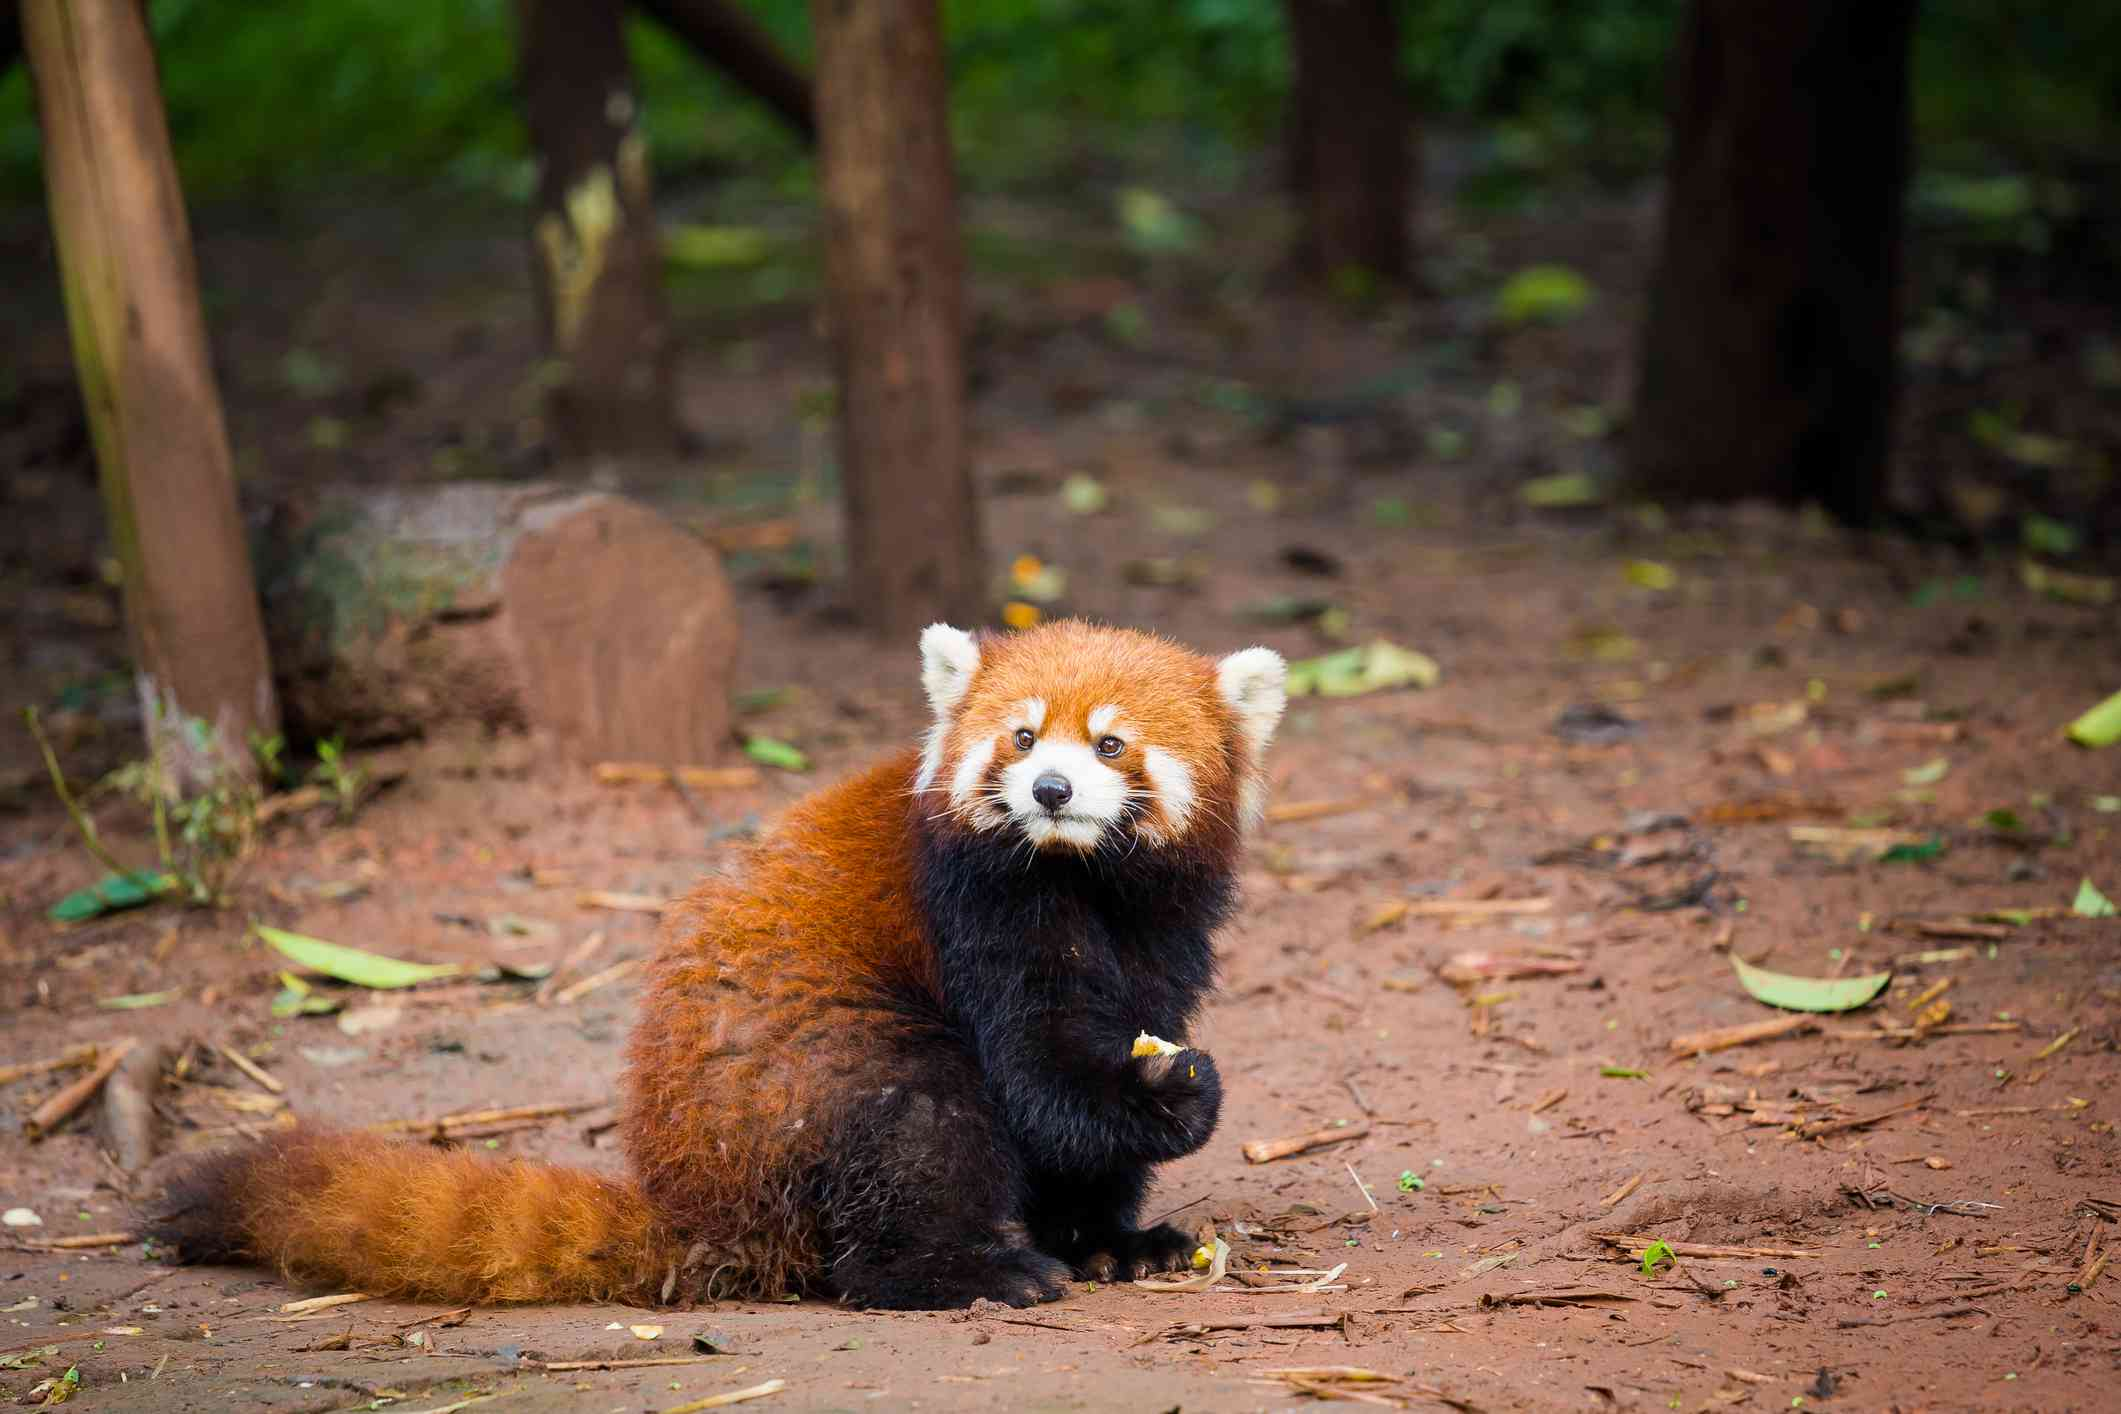 Red panda on the ground